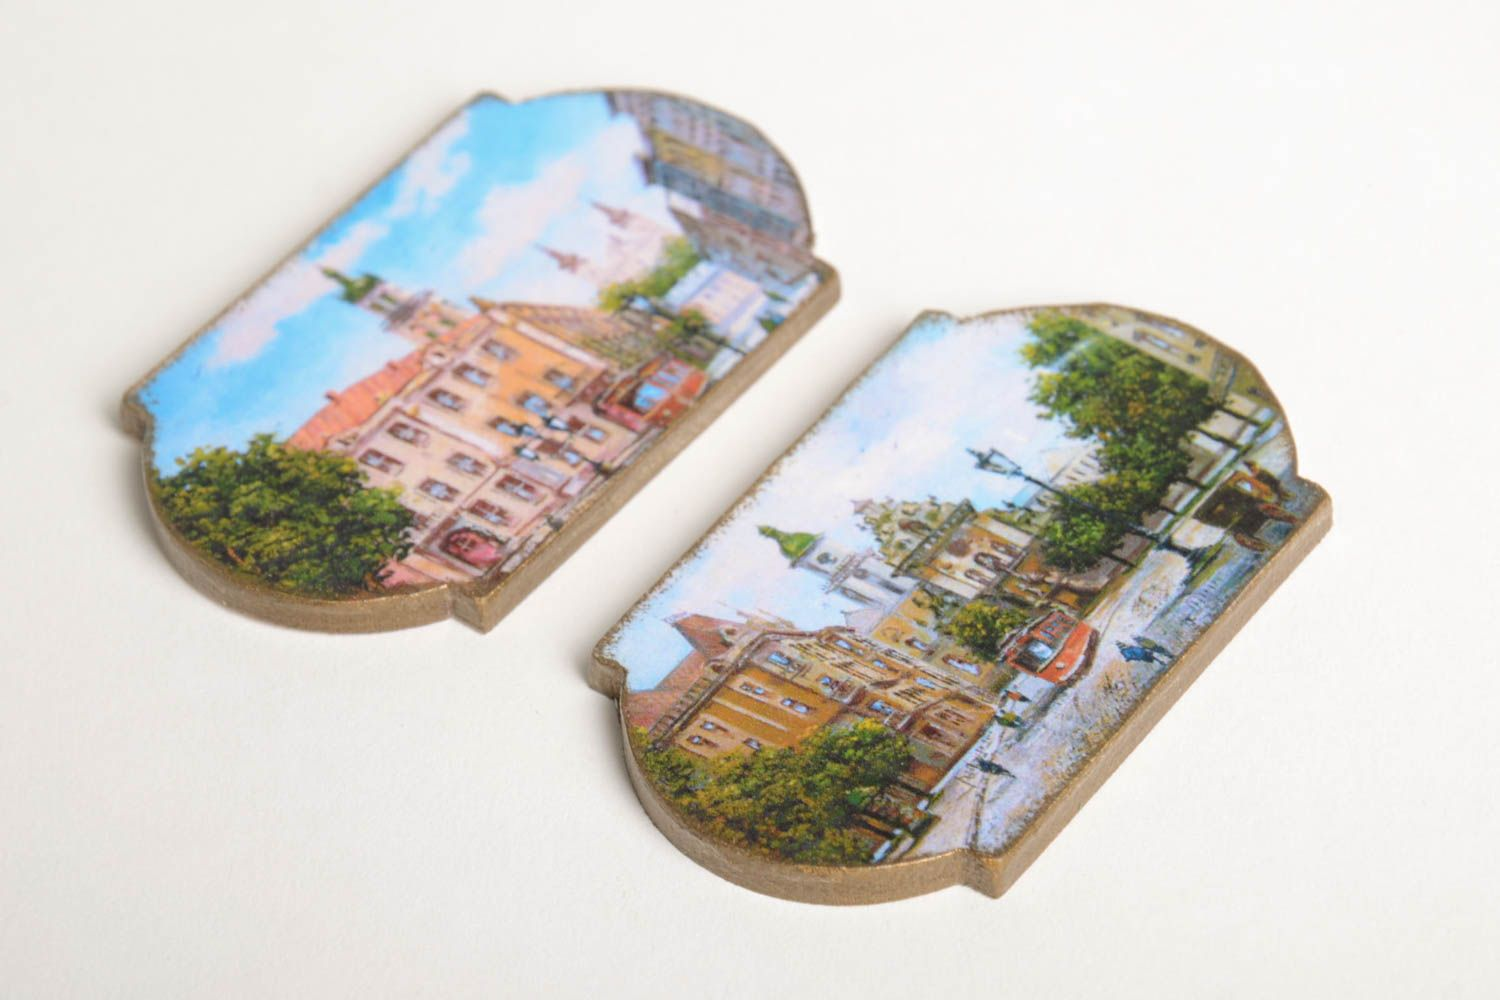 Handmade fridge magnet 2 pieces home decoration small gifts decorative use only photo 5